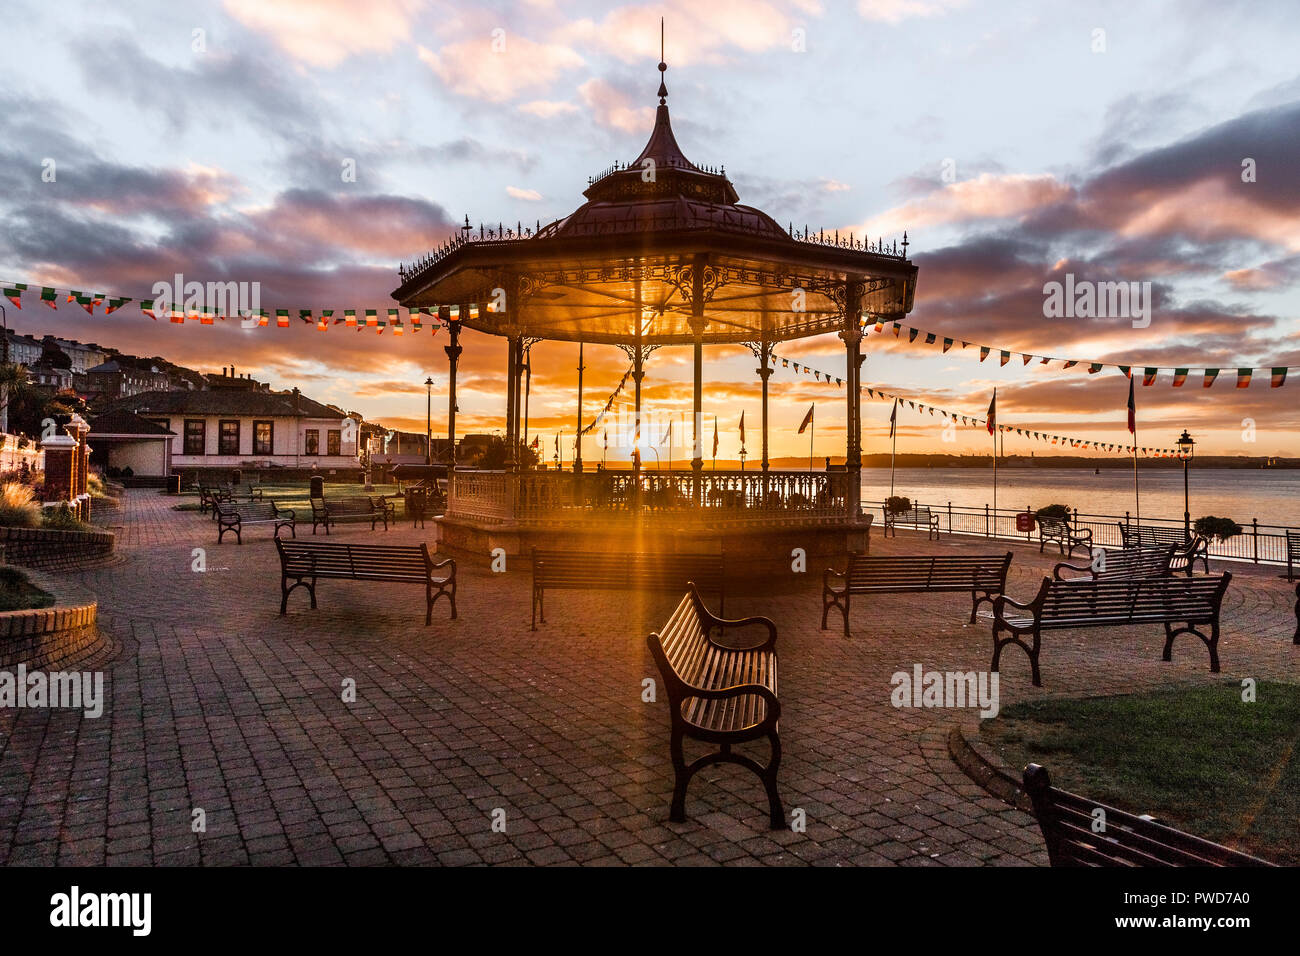 Cobh, Cork, Ireland.  19th September, 2016. The old Victorian Bandstand at Kennedy park in Cobh, Co Cork illuminated by early morning light. - Stock Image